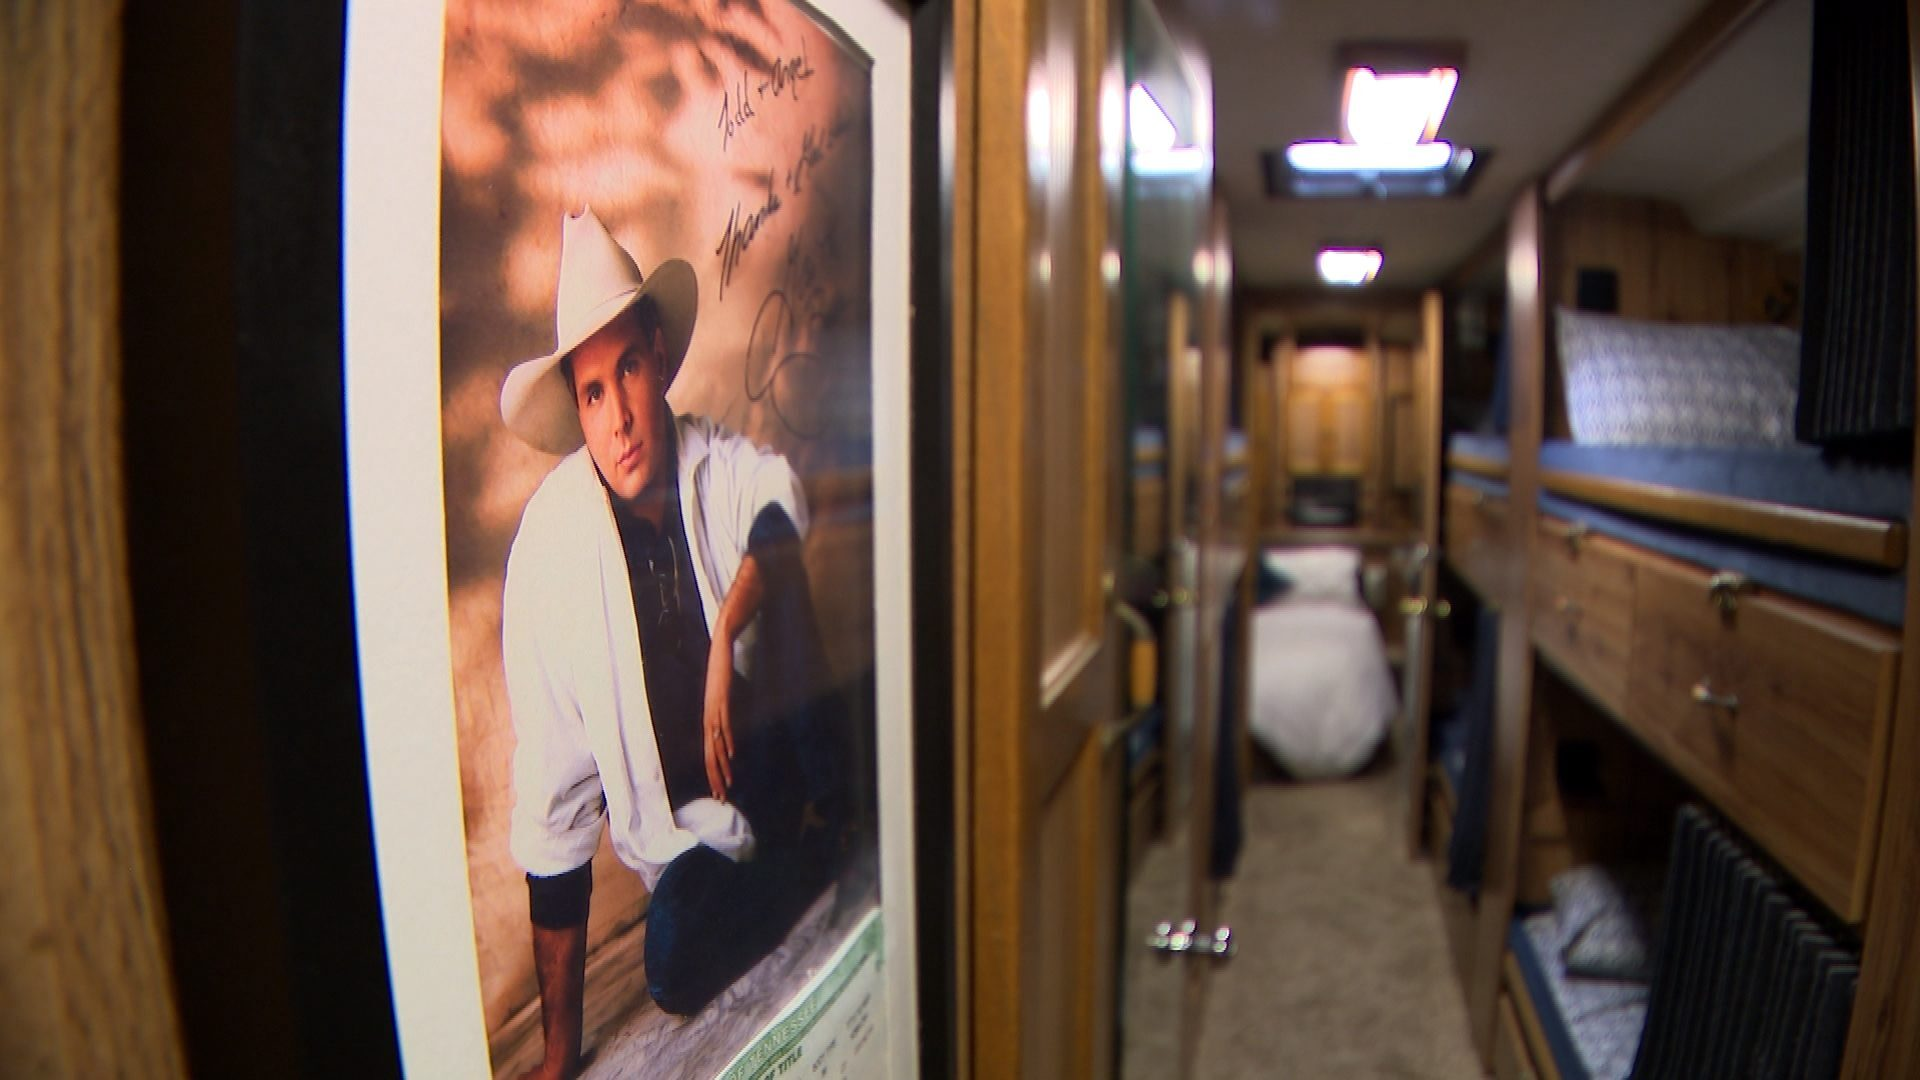 GARTH BROOKS TOUR BUS ITEMS 5.jpg